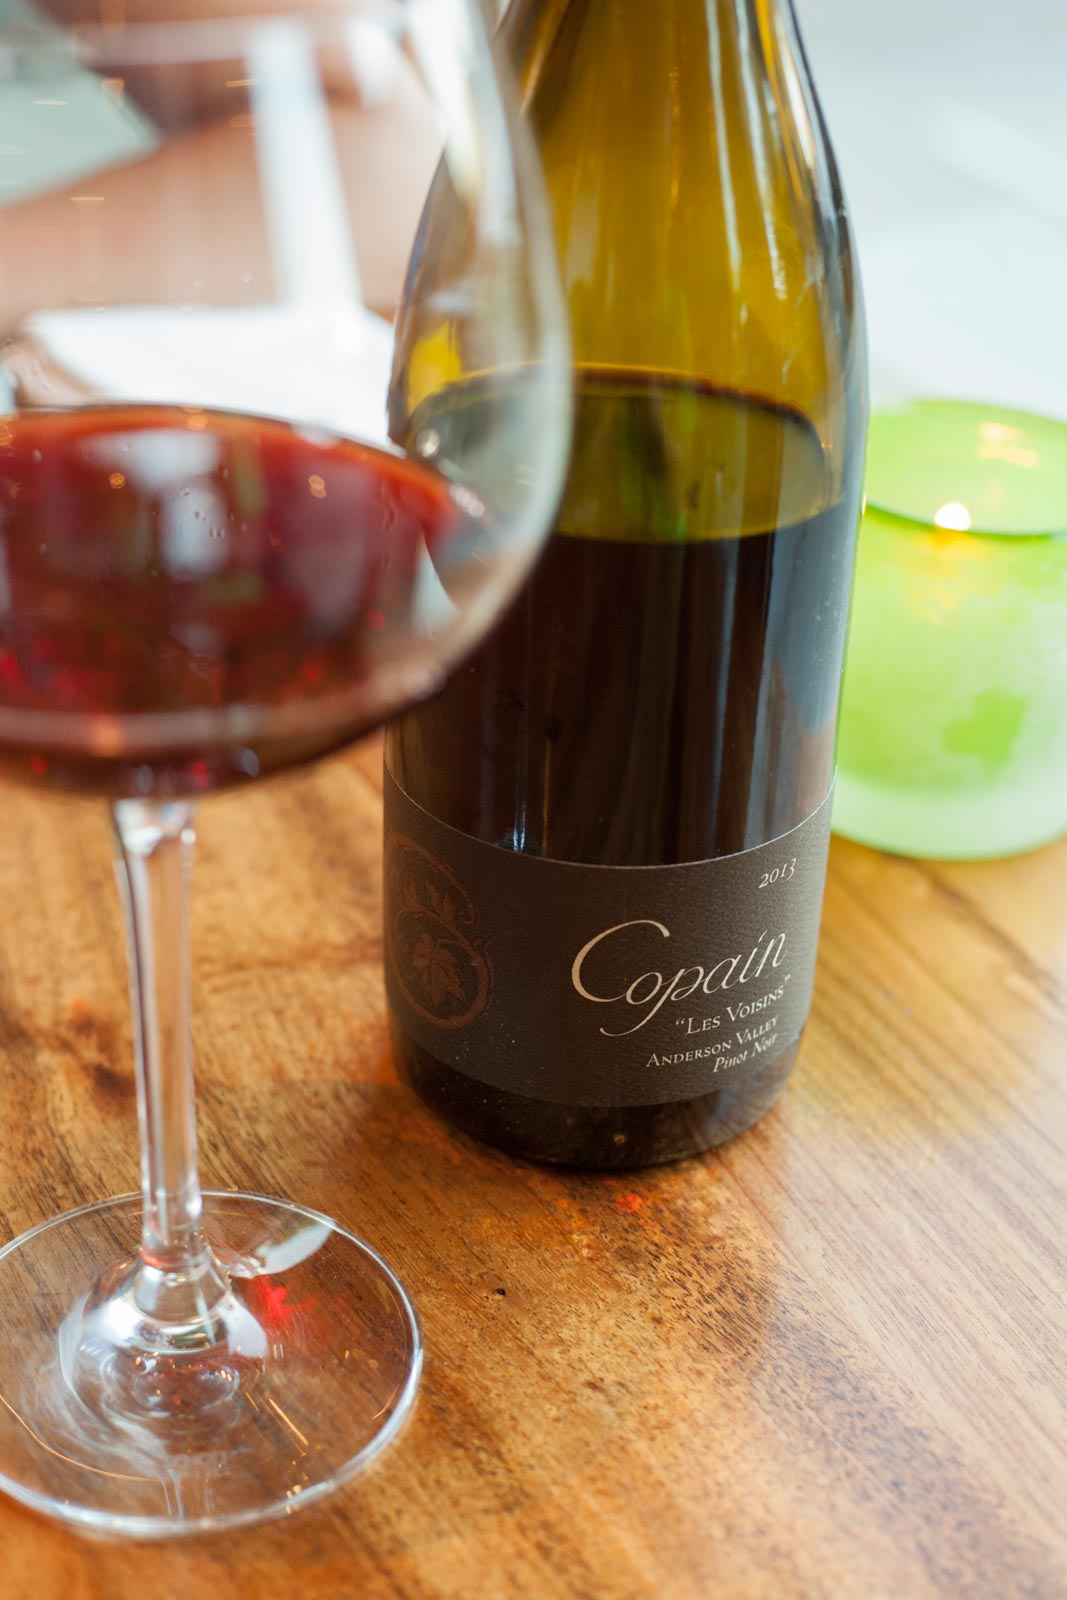 A bottle of Copain Les Voisin Anderson Valley Pinot Noir with dinner. ©Kevin Day/Opening a Bottle